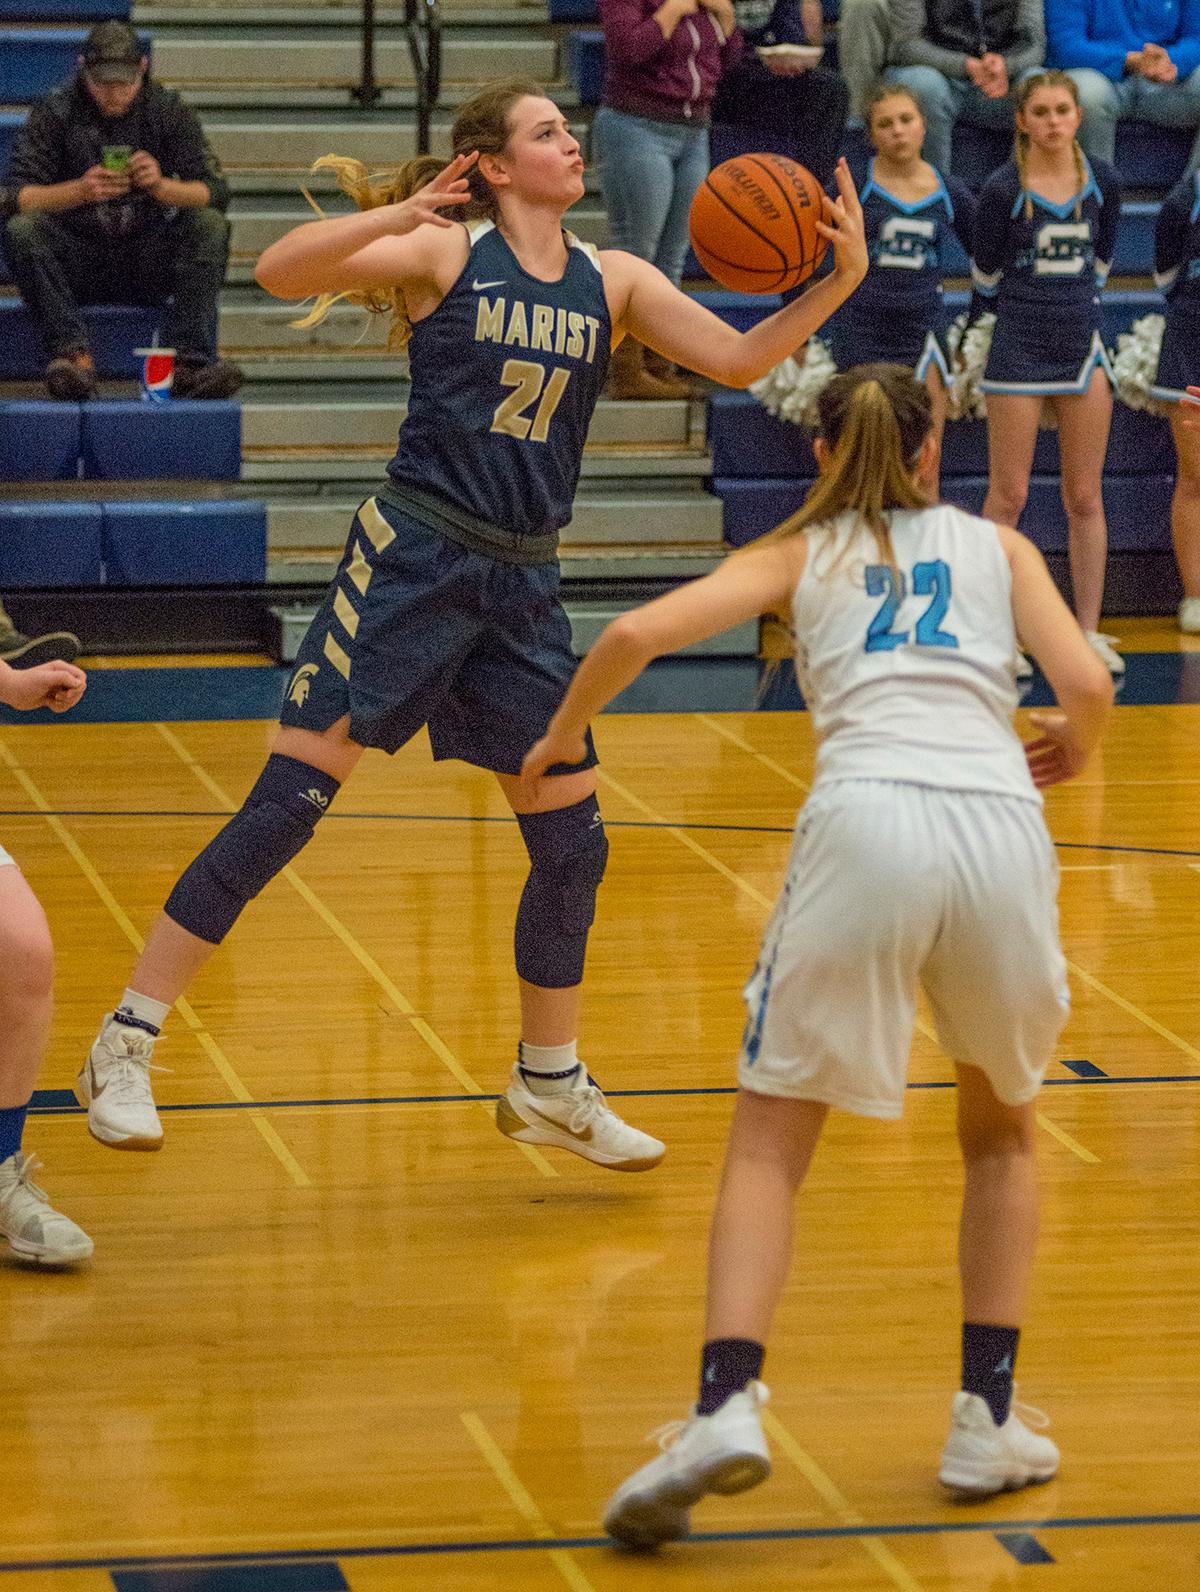 The Springfield Millers handed the Marist Spartans their first conference loss of the season, 40-37. Both Springfield and Marist are now tied for 1st place in the Midwestern League. (Photo courtesy of Dan Morrison, Oregon News Lab).<p></p>